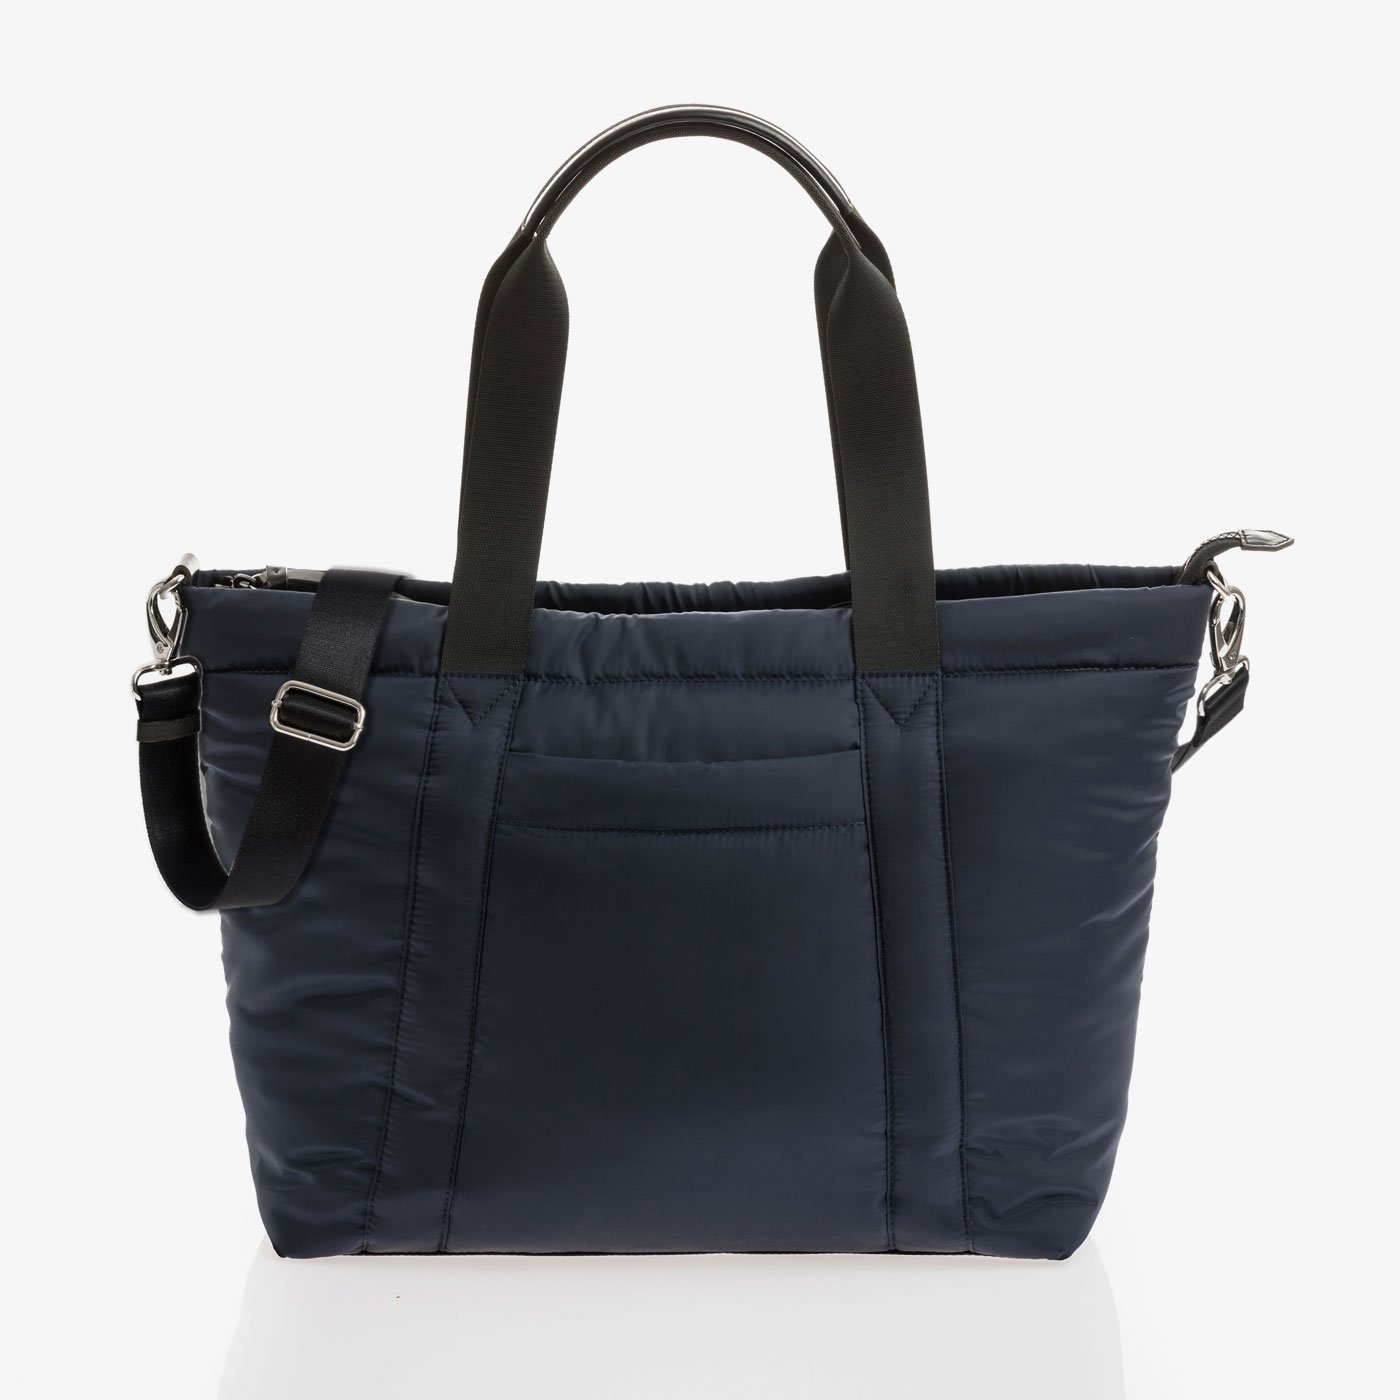 Jem and Bea Romy Puffer Tote in Navy